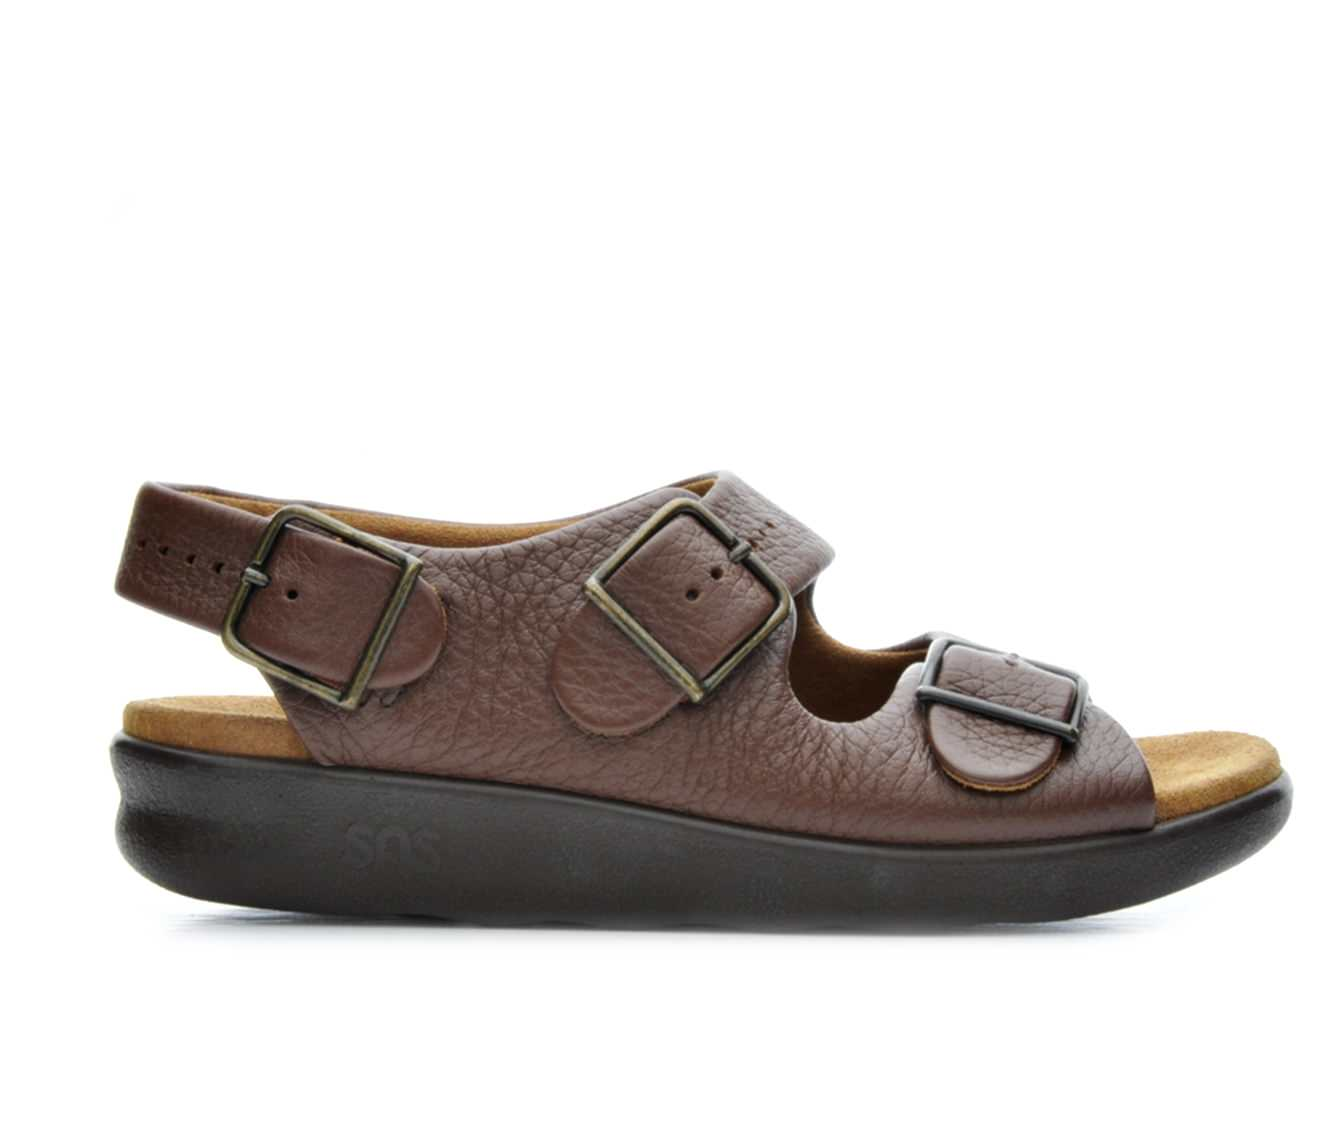 Sas Relaxed Women's Shoe (Brown Leather)